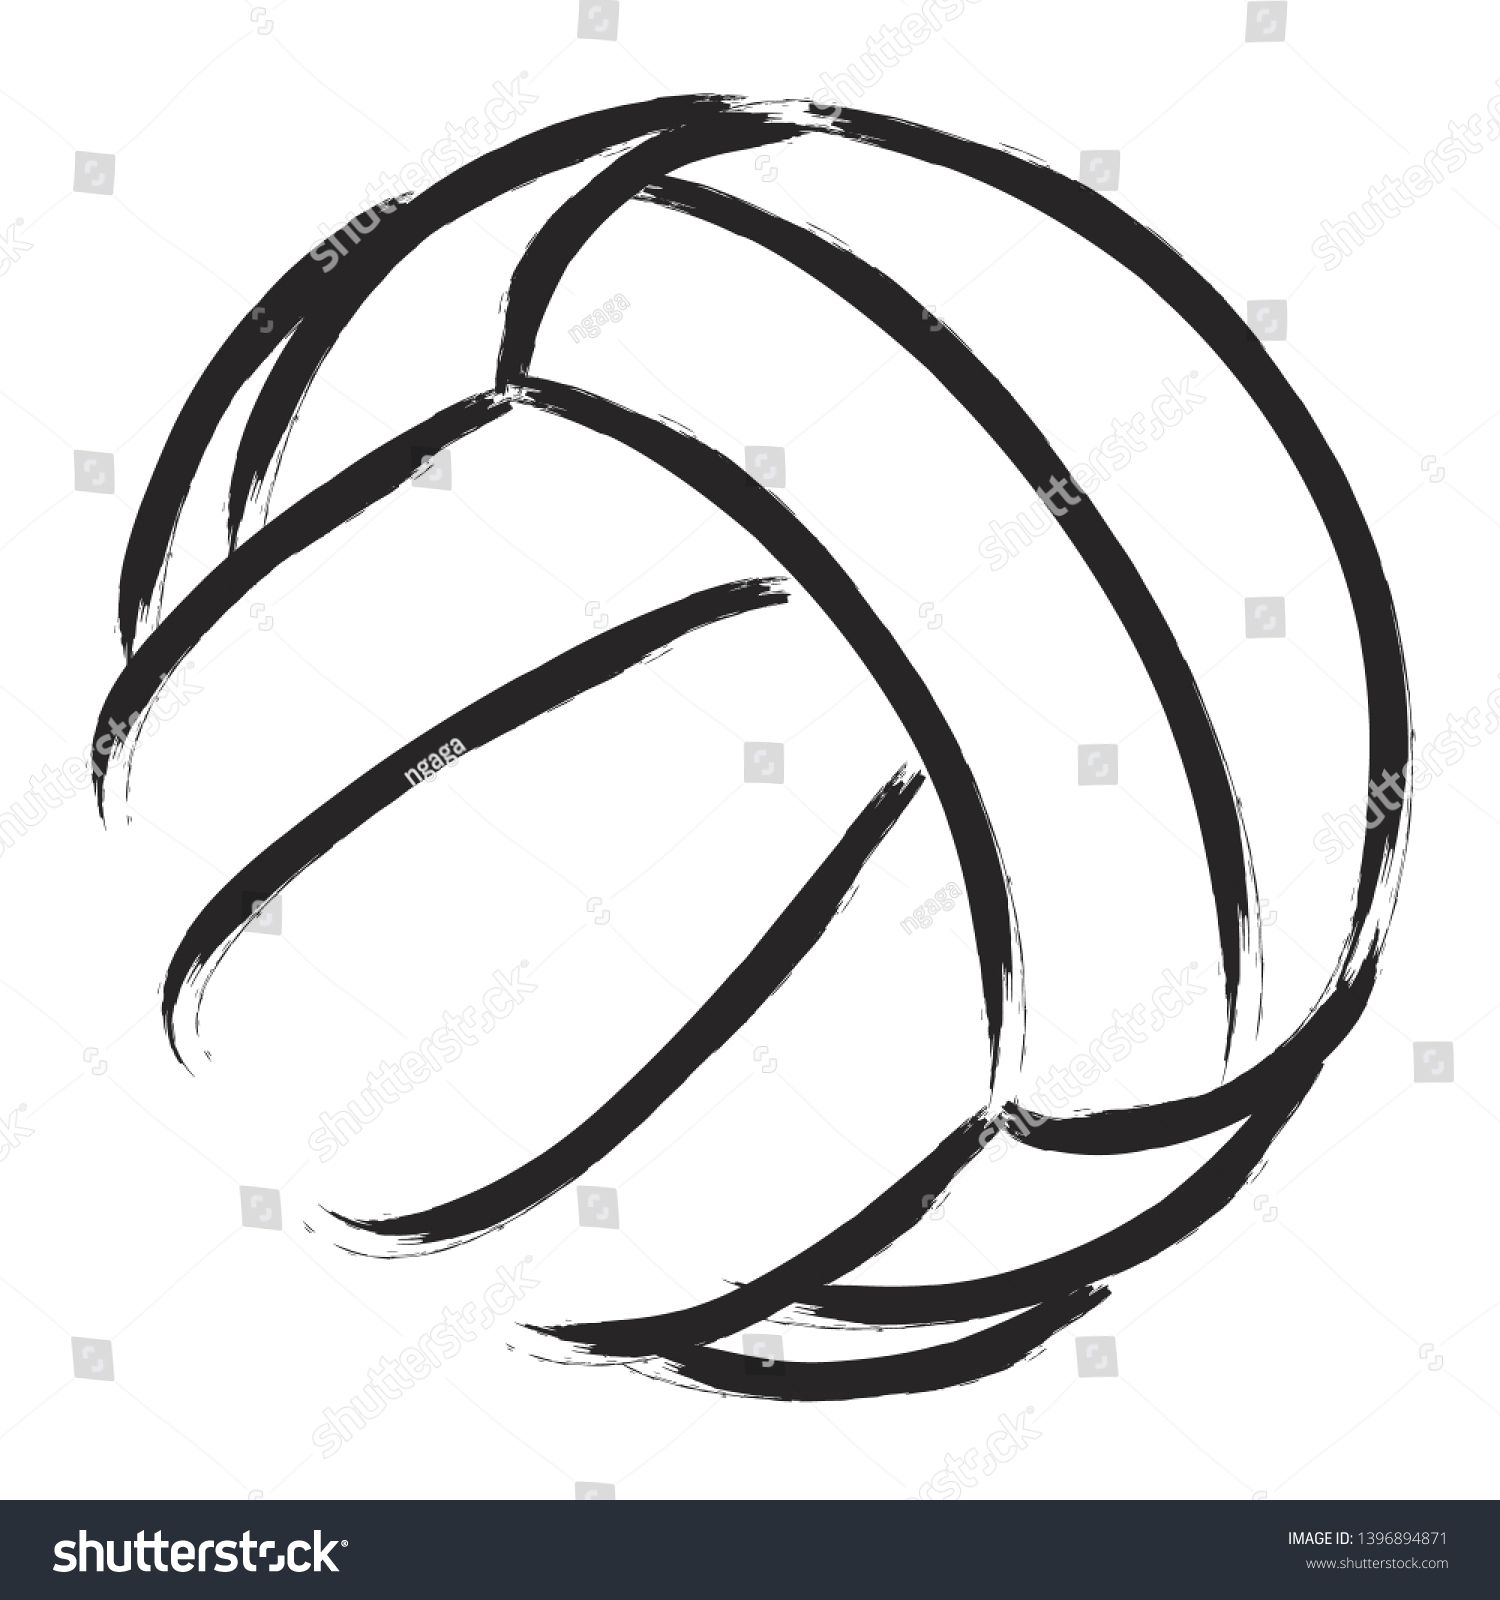 Stylized Illustration Of A Volleyball Background Sport Vector Ad Sponsored Volleyball Illustra Volleyball Backgrounds Graphic Design Poster Illustration